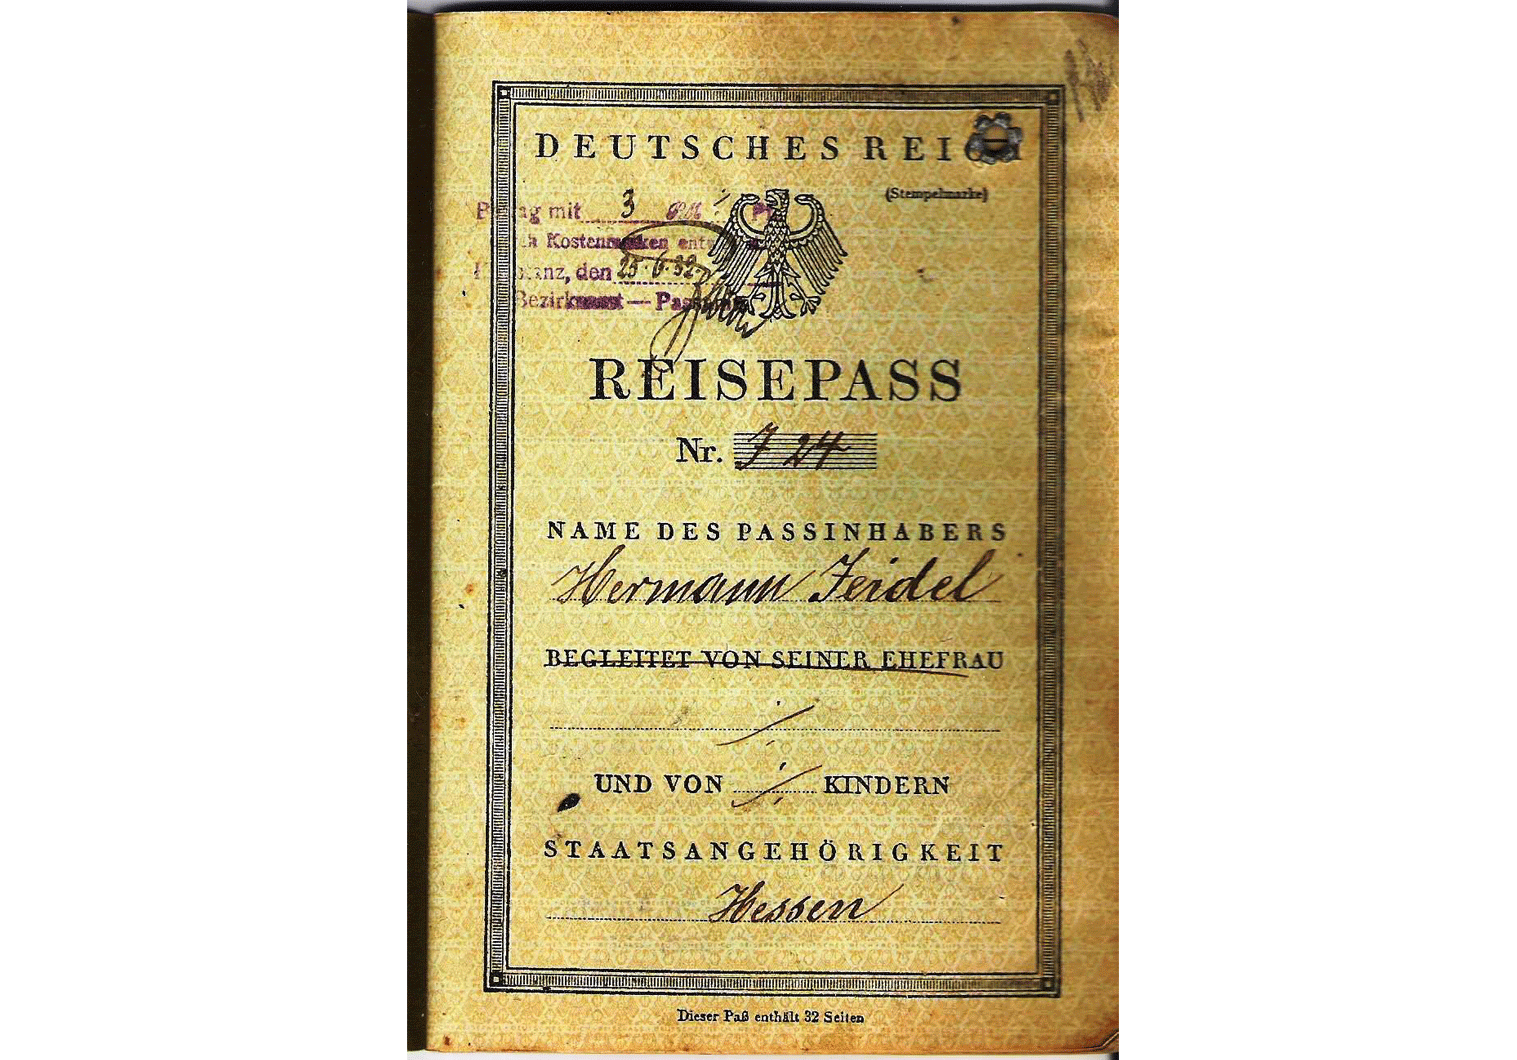 Late Weimar Republic passport